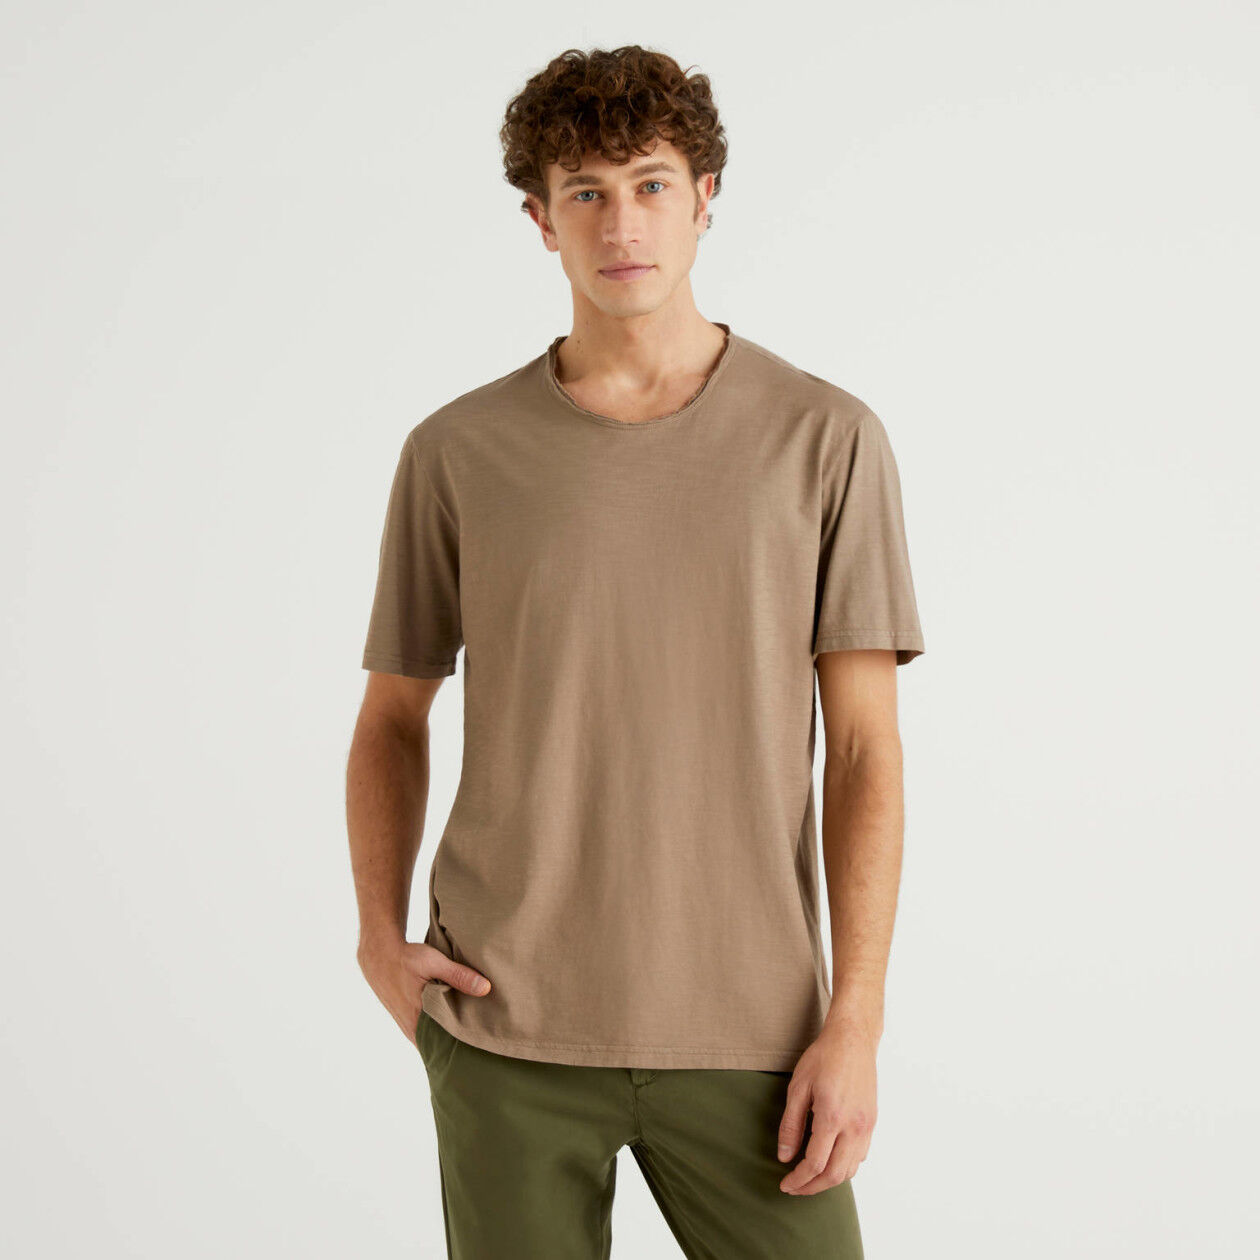 Dove gray t-shirt in pure cotton